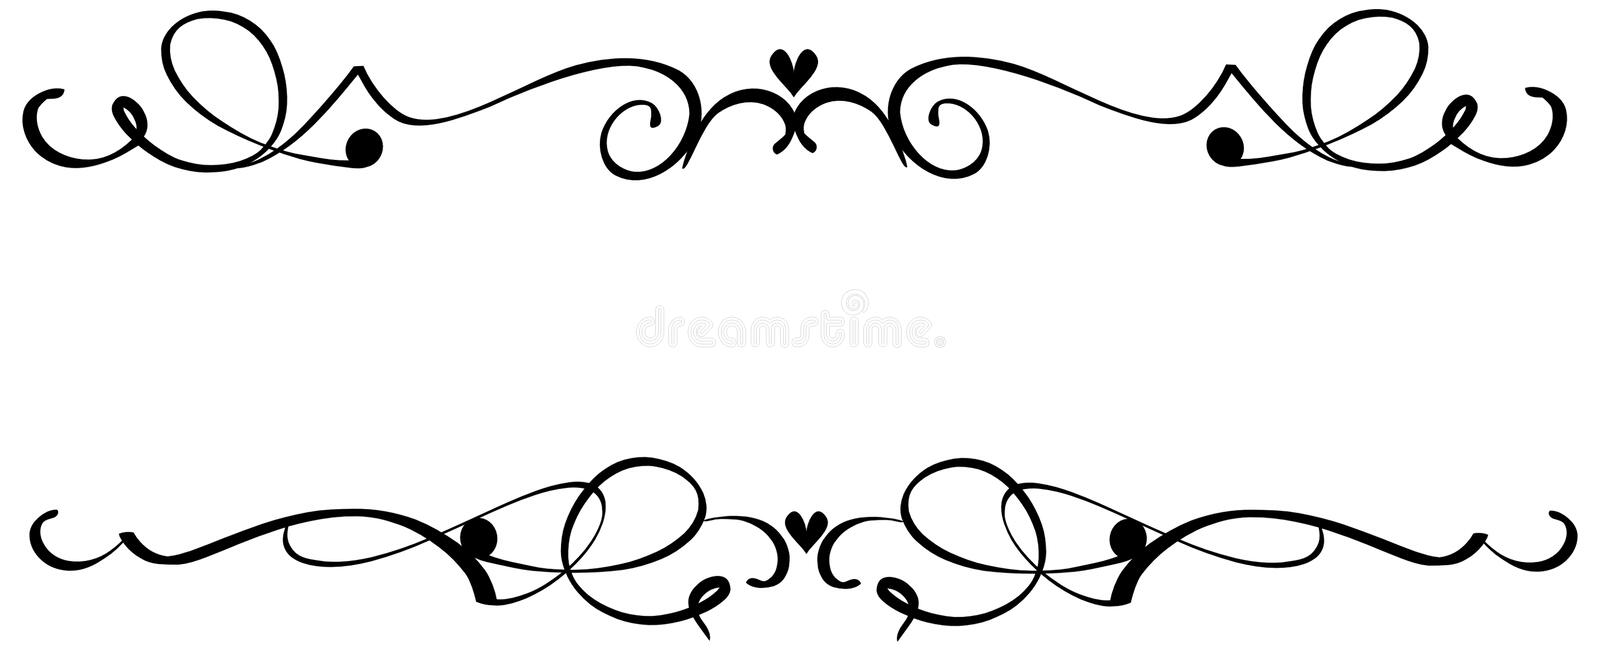 Scroll Heart Ornaments stock illustration